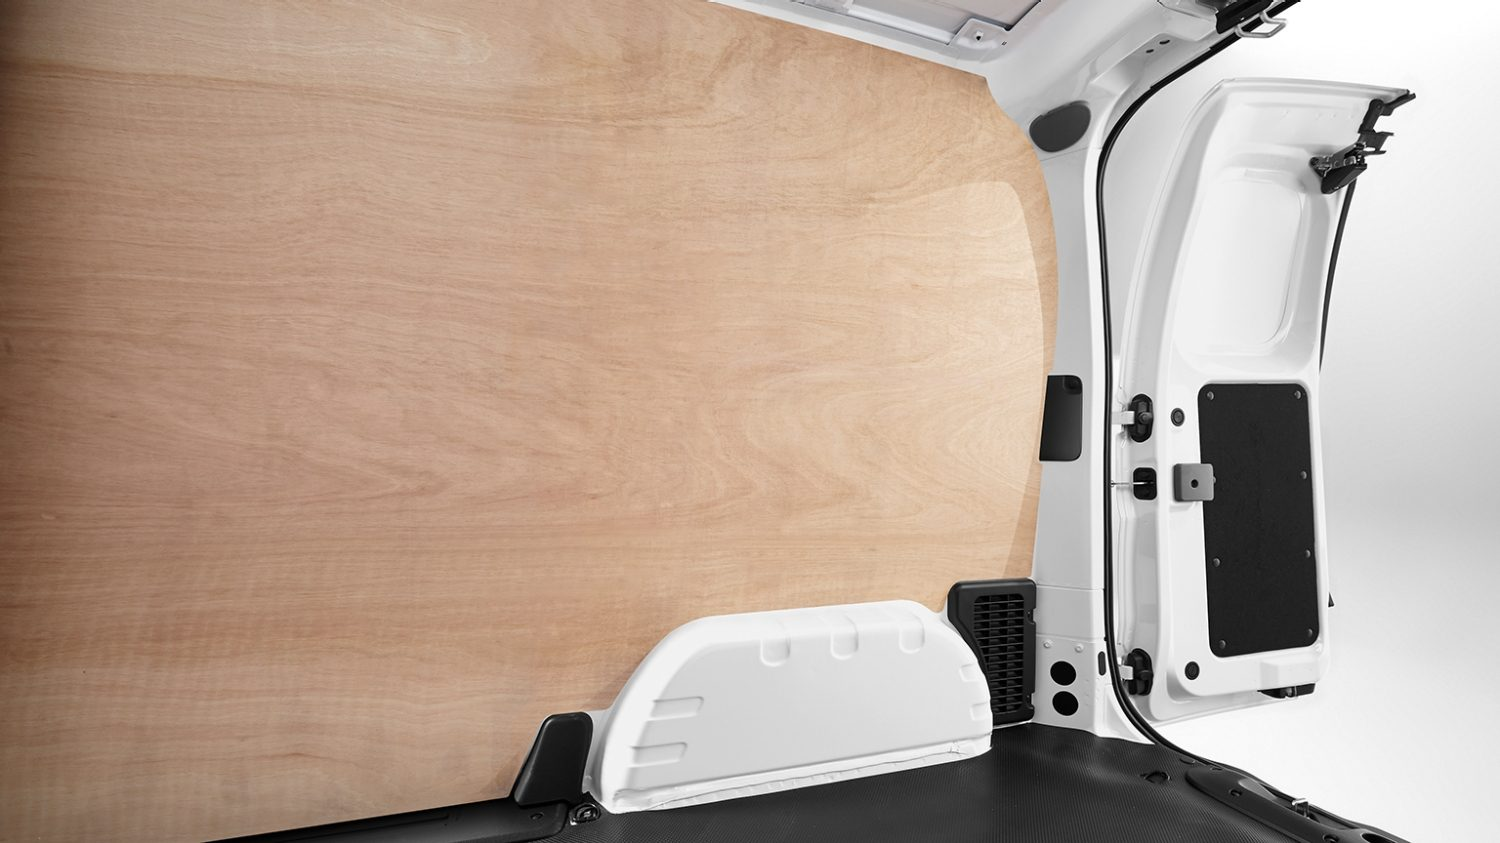 Nissan NV200 - Interior - Full side wood protection panel